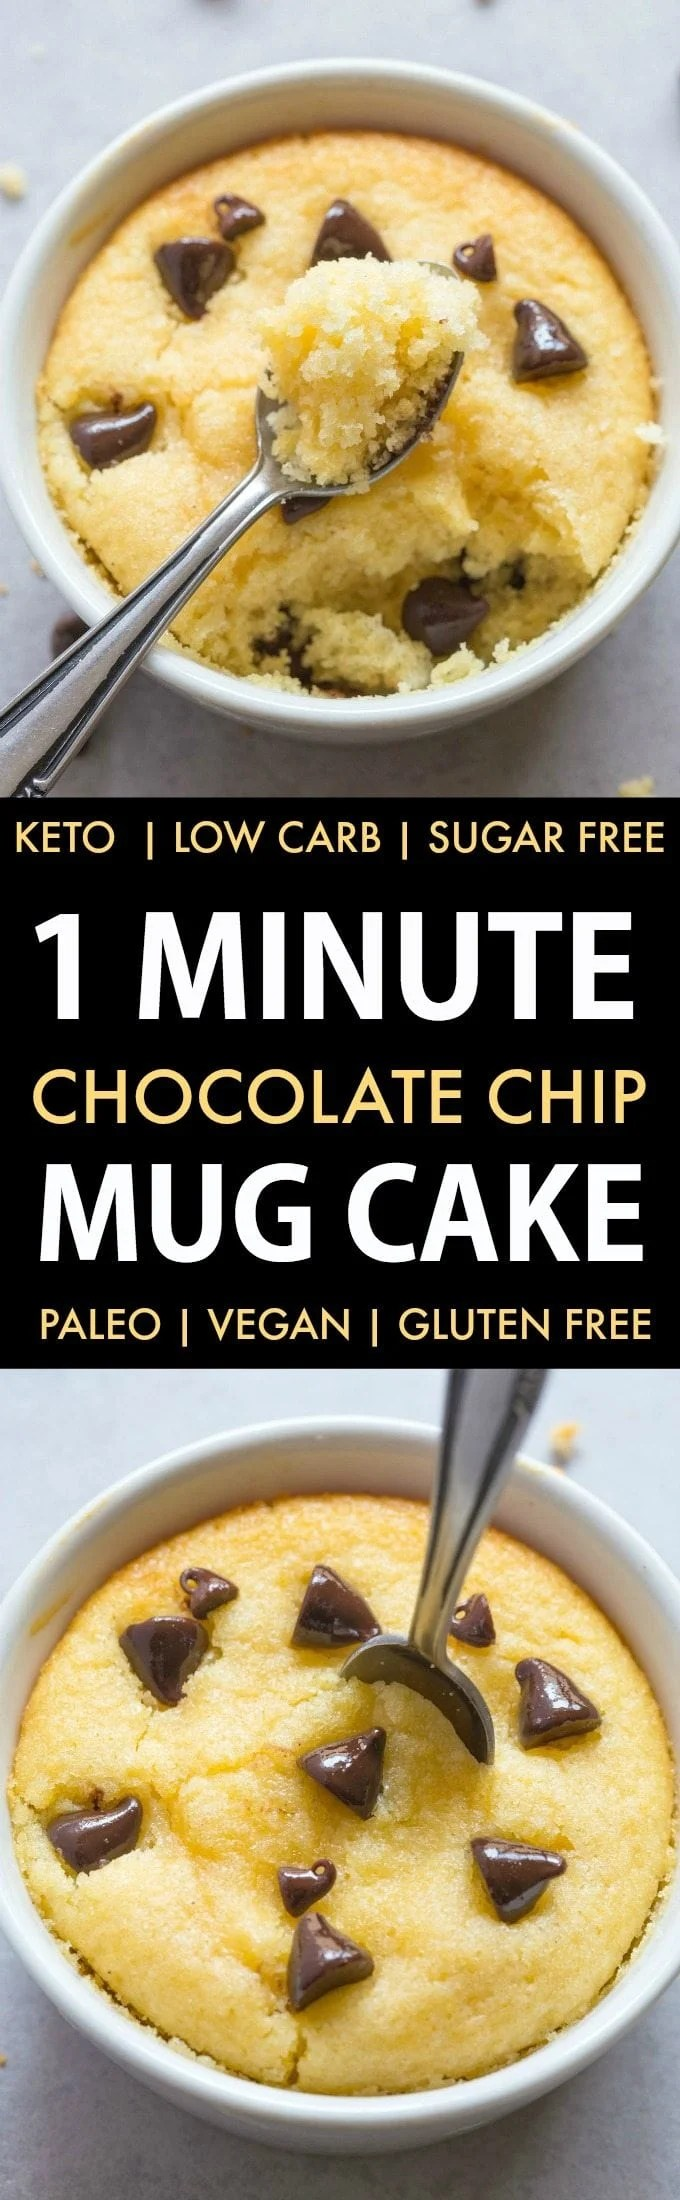 1 Minute Low Carb Chocolate Chip Mug Cake (Keto, Sugar Free, Paleo, Vegan, Gluten Free)- An easy recipe for a light and fluffy mug cake muffin ready in a minute or with an oven option too- NO grains and NO sugar! #ketodessert #keto #paleo #vegan #dairyfree #sugarfree | Recipe on thebigmansworld.com